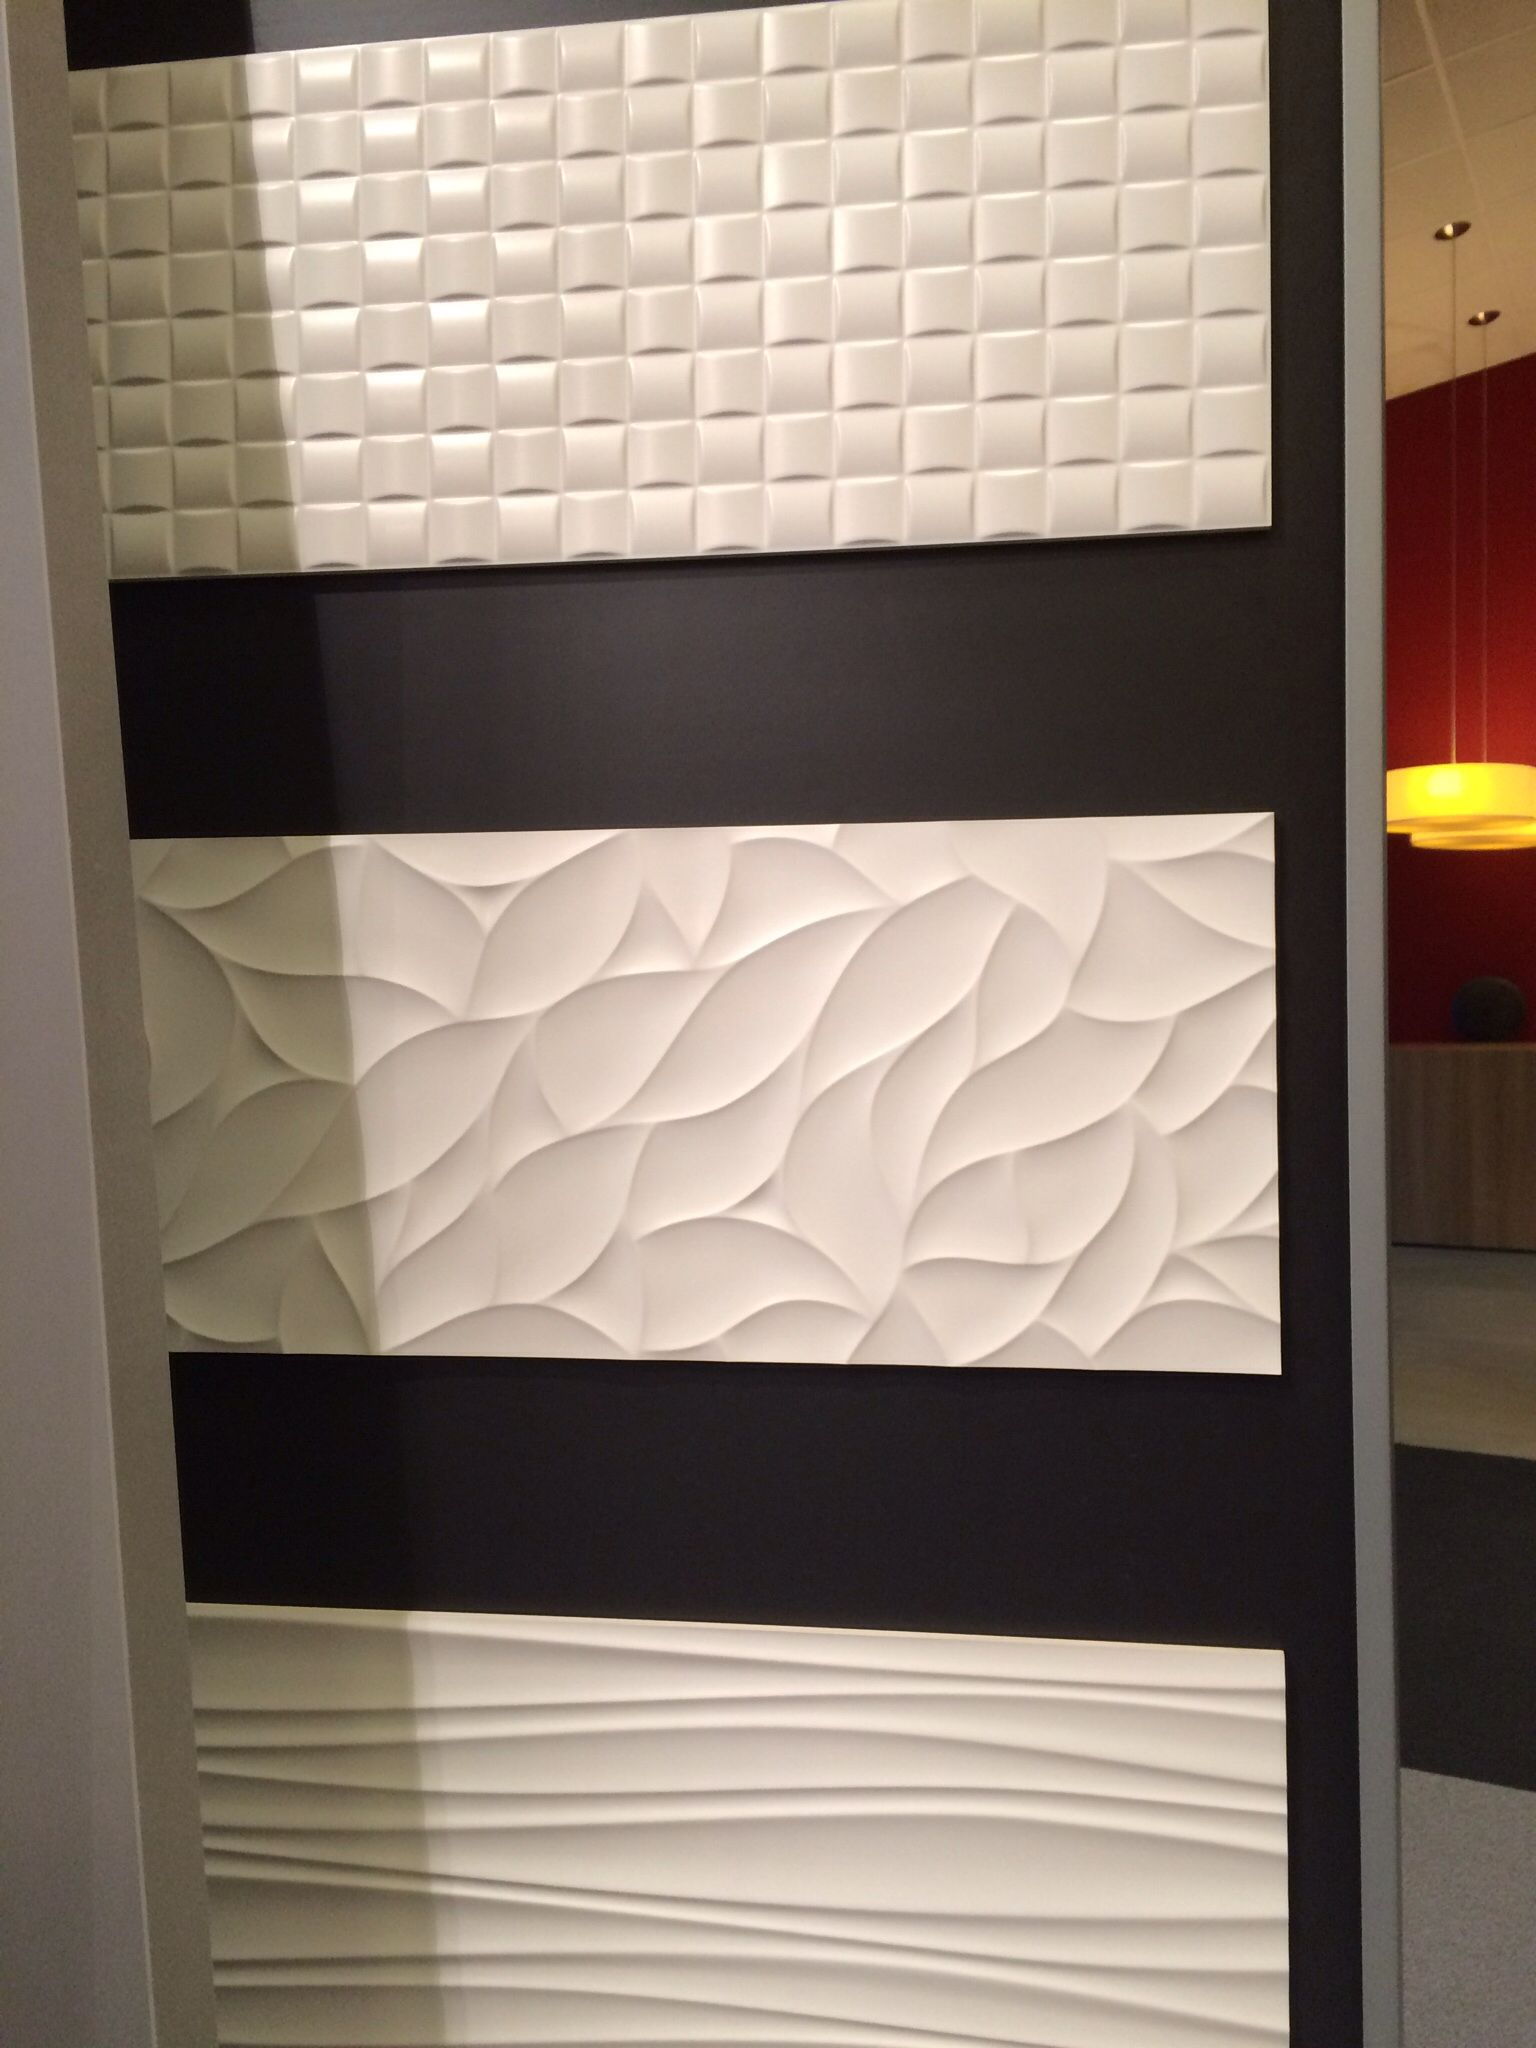 mooie tegel voor accent filippo inspiration for a bathroom